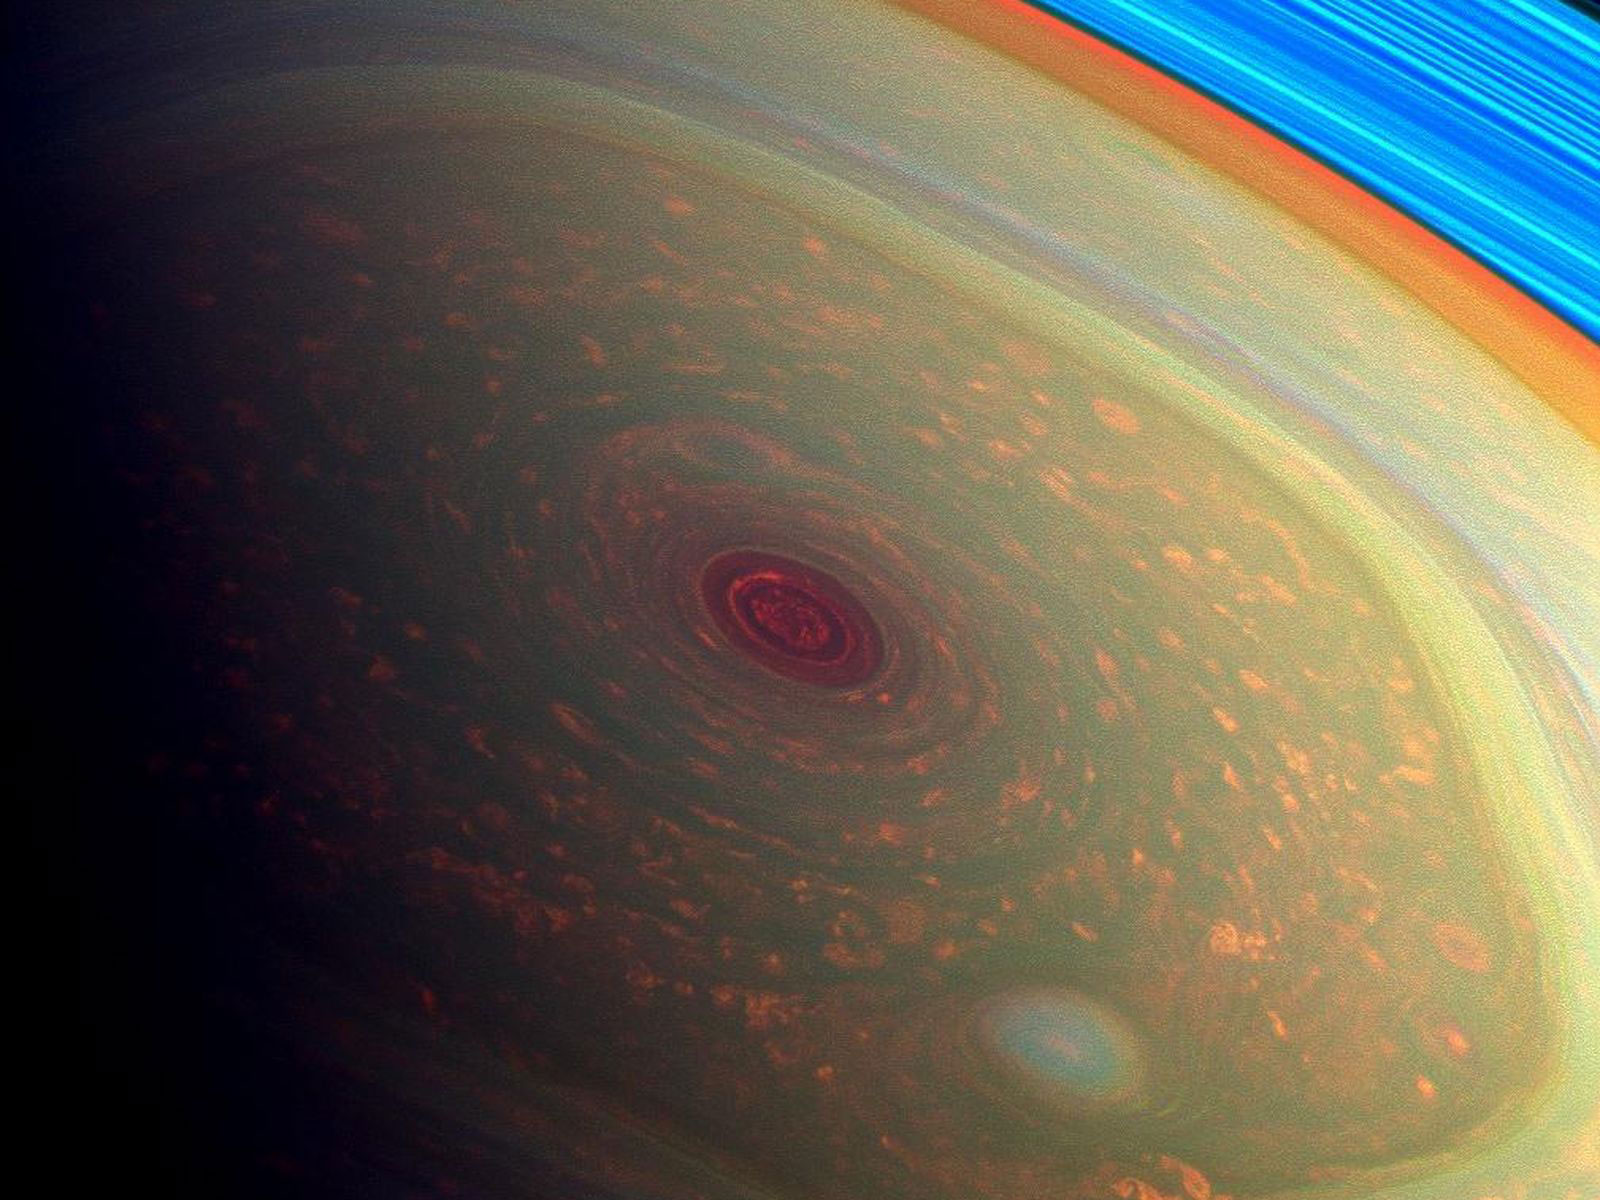 The Cassini spacecraft captured the storms at Saturn's north pole in this false color image released in April 2013. The storm appears dark red while the fast-moving hexagonal jet stream framing it is a yellowish green. Low-lying clouds circling inside the hexagonal feature appear in orange. A second, smaller vortex pops out in teal at the lower right of the image. The rings of Saturn appear in vivid blue at the top right.